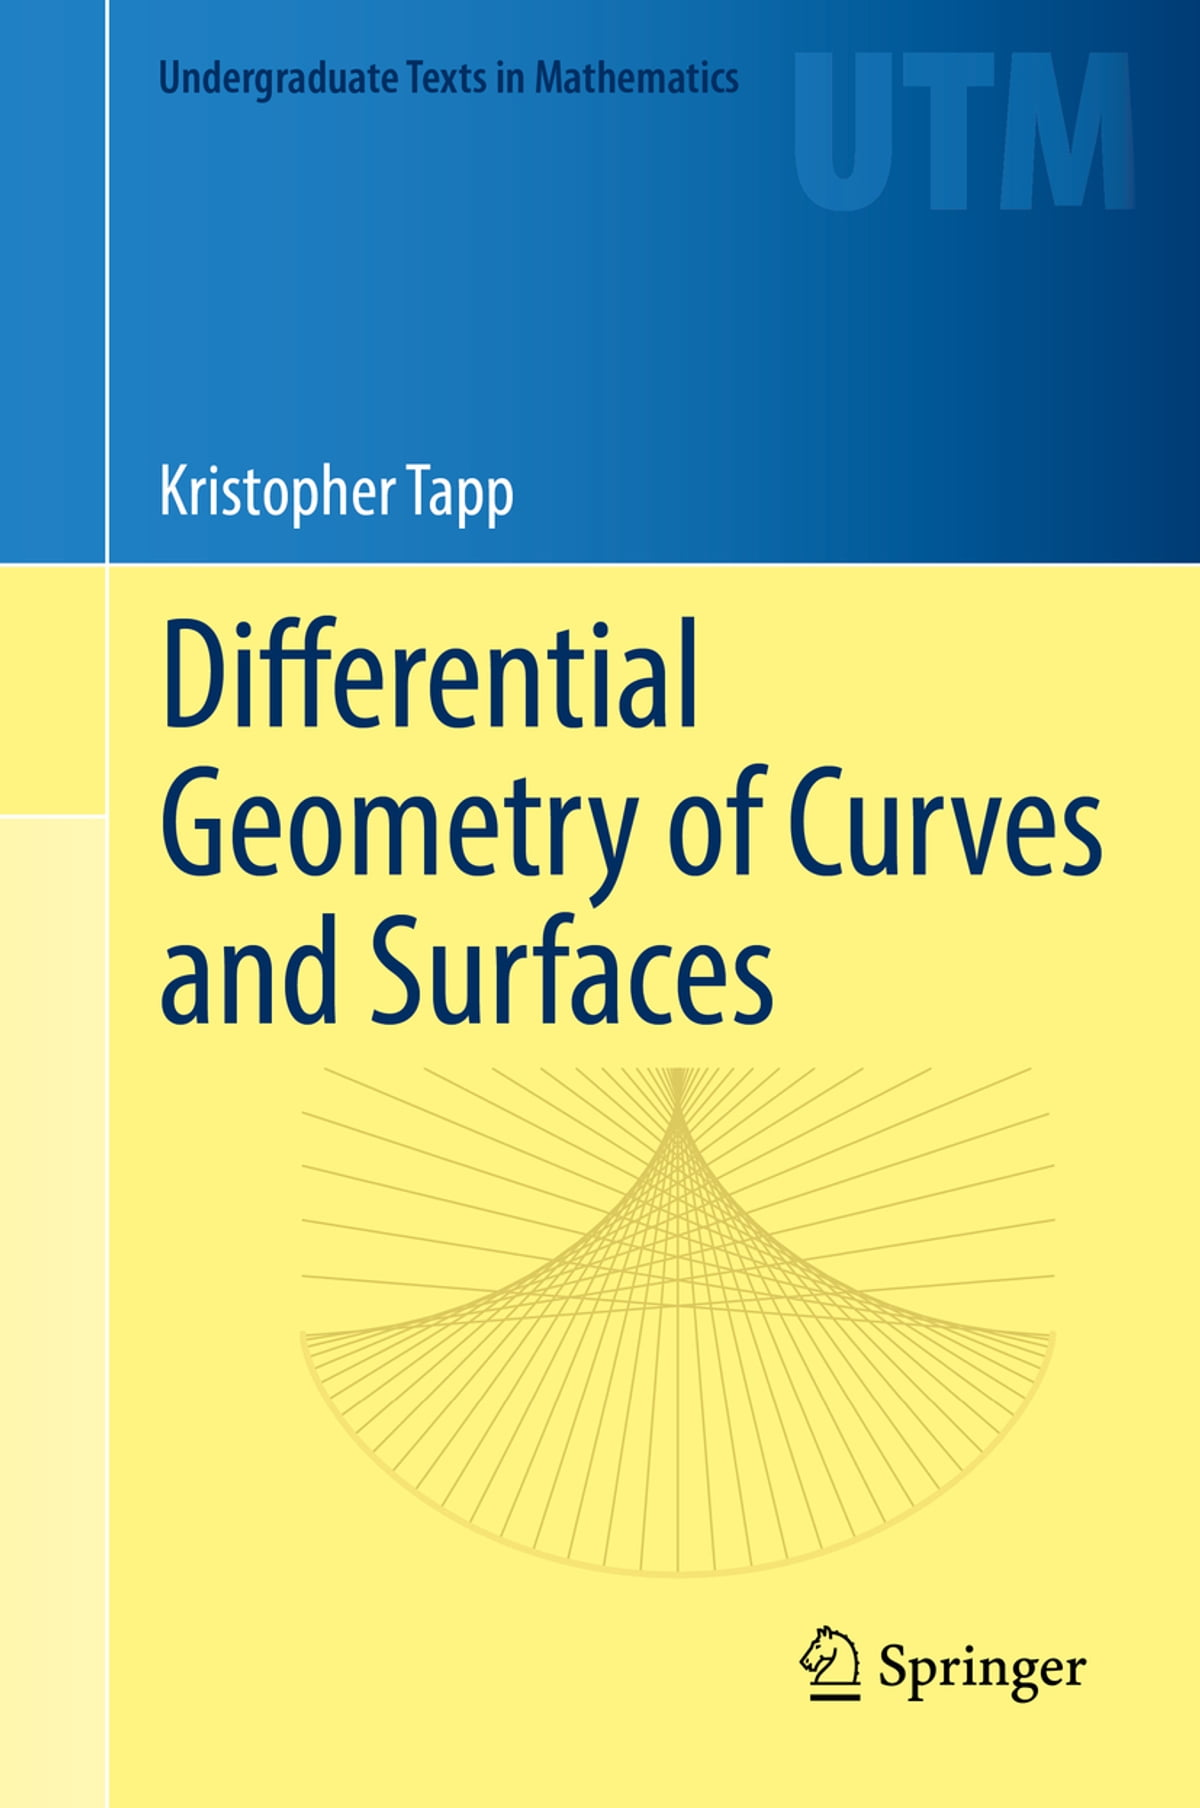 Differential Geometry of Curves and Surfaces eBook by Kristopher Tapp -  9783319397993 | Rakuten Kobo